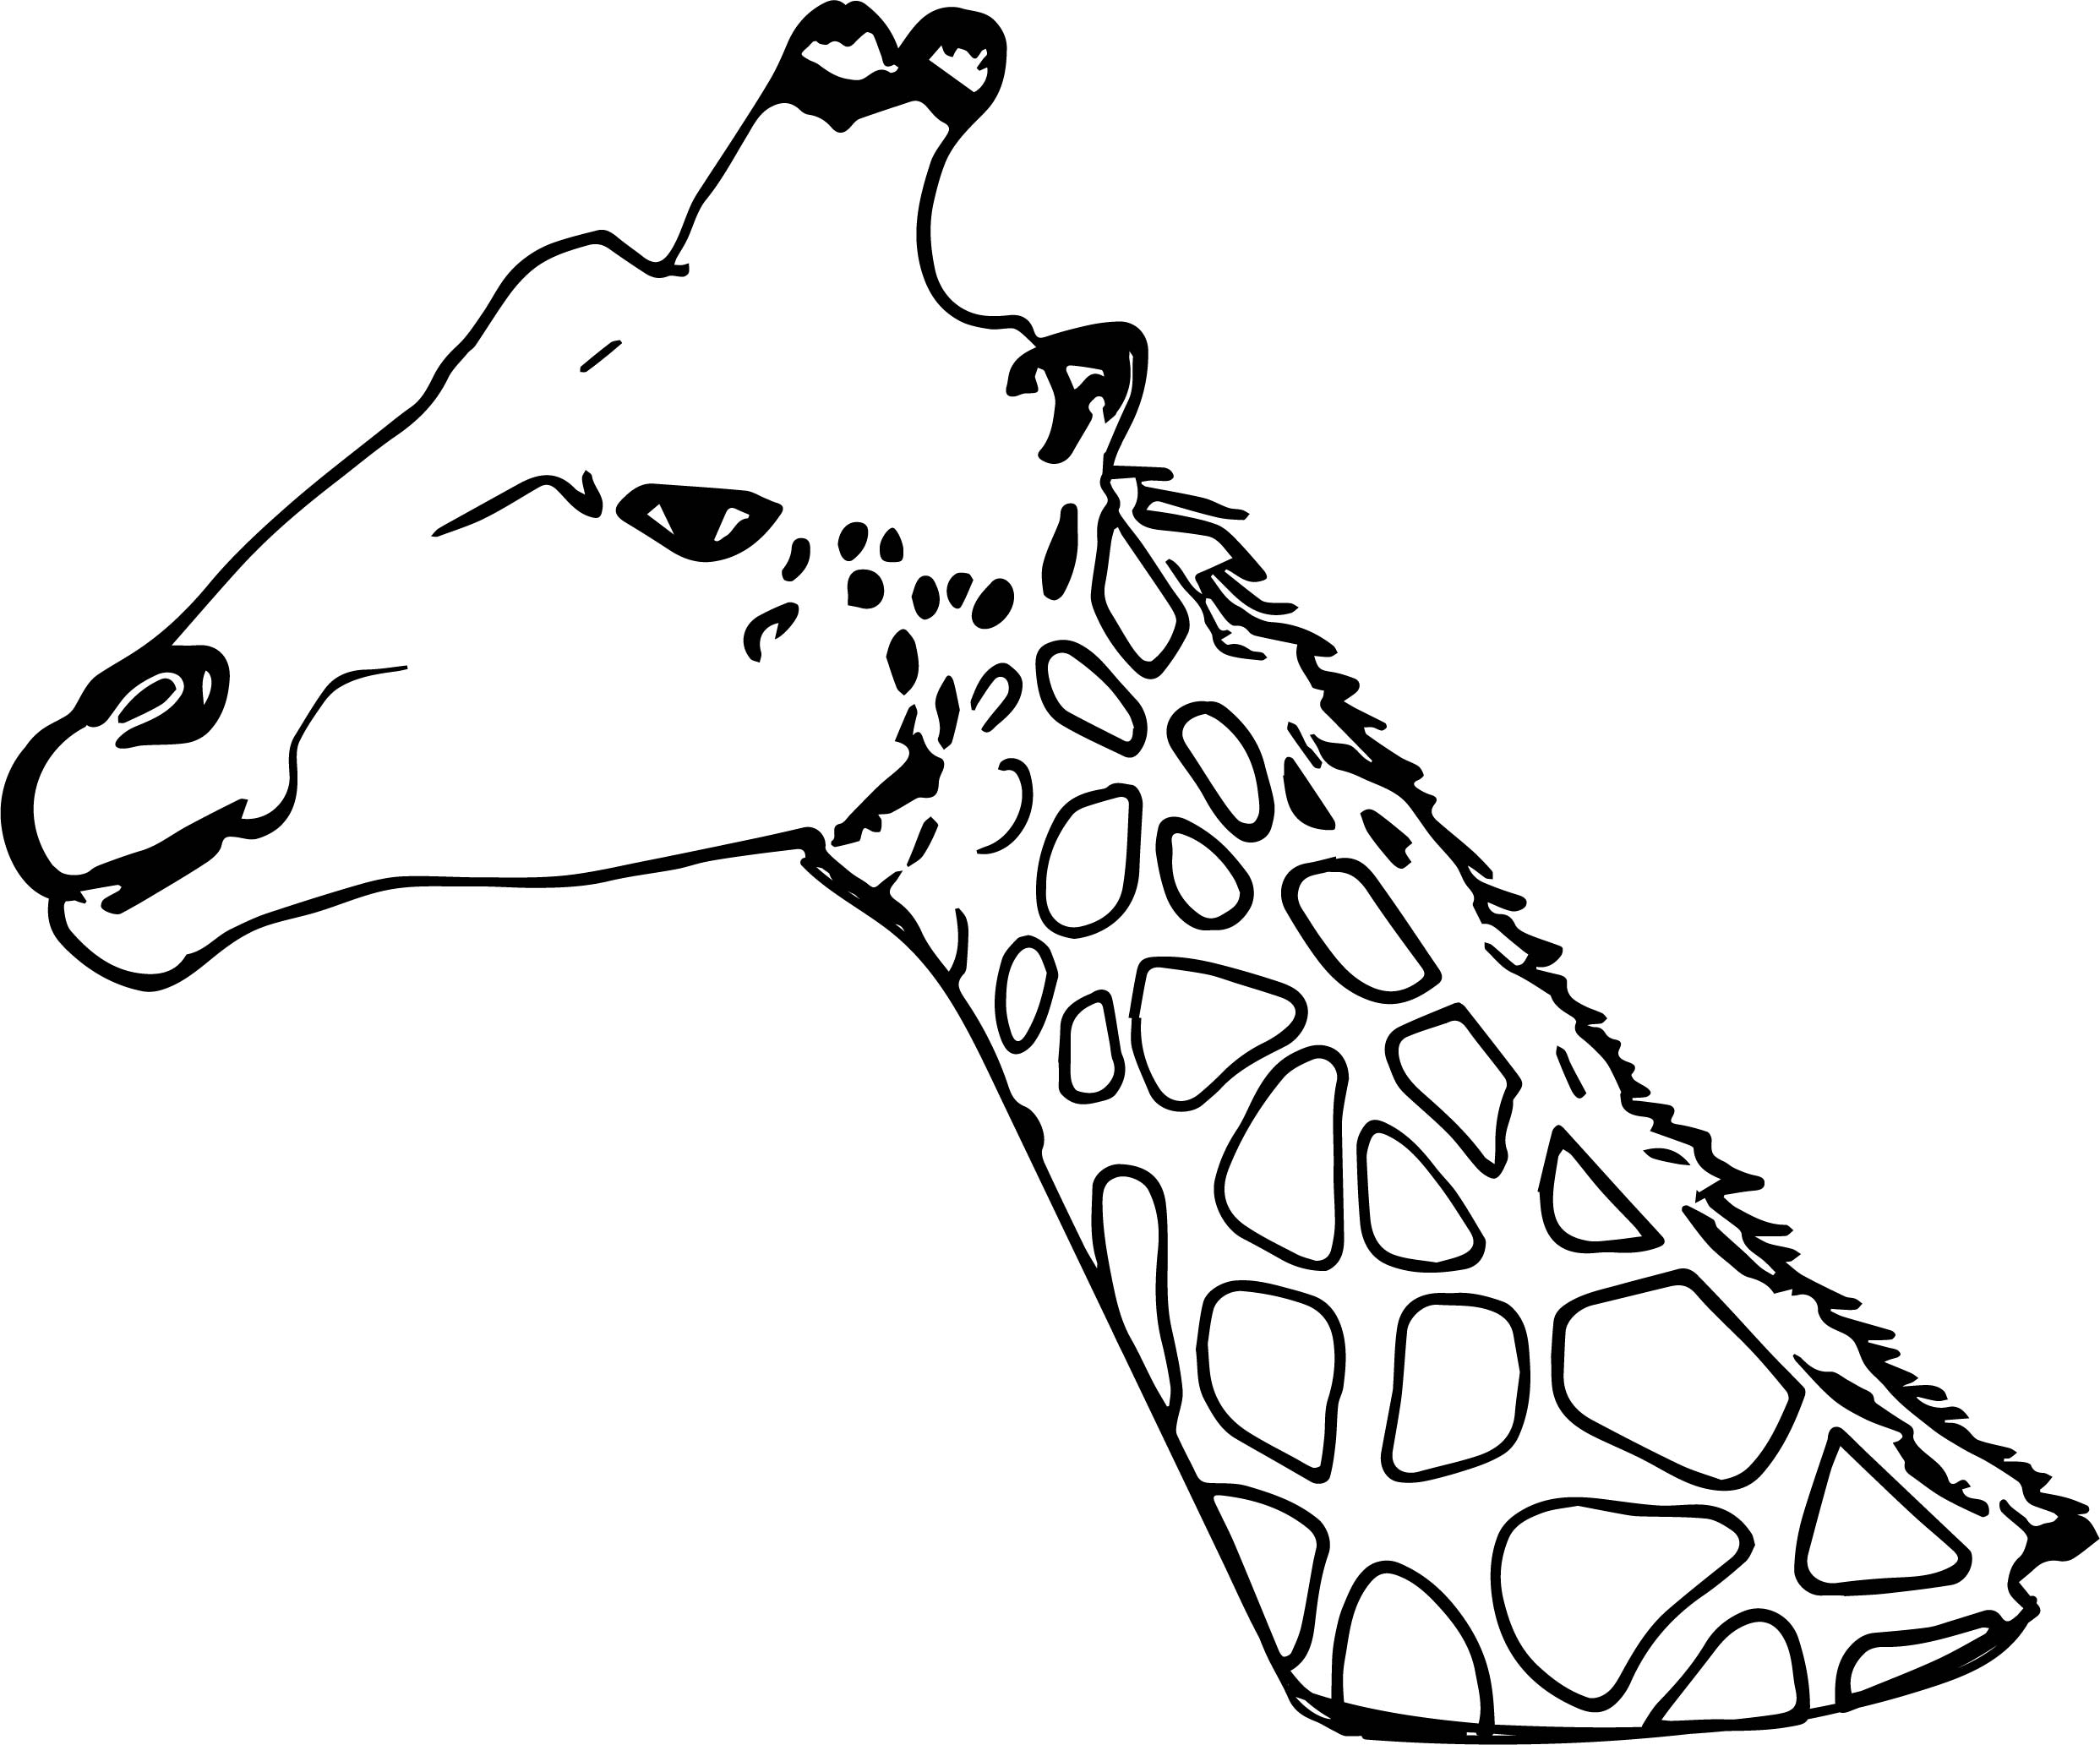 Giraffe Head Coloring Pages Pictures To Pin